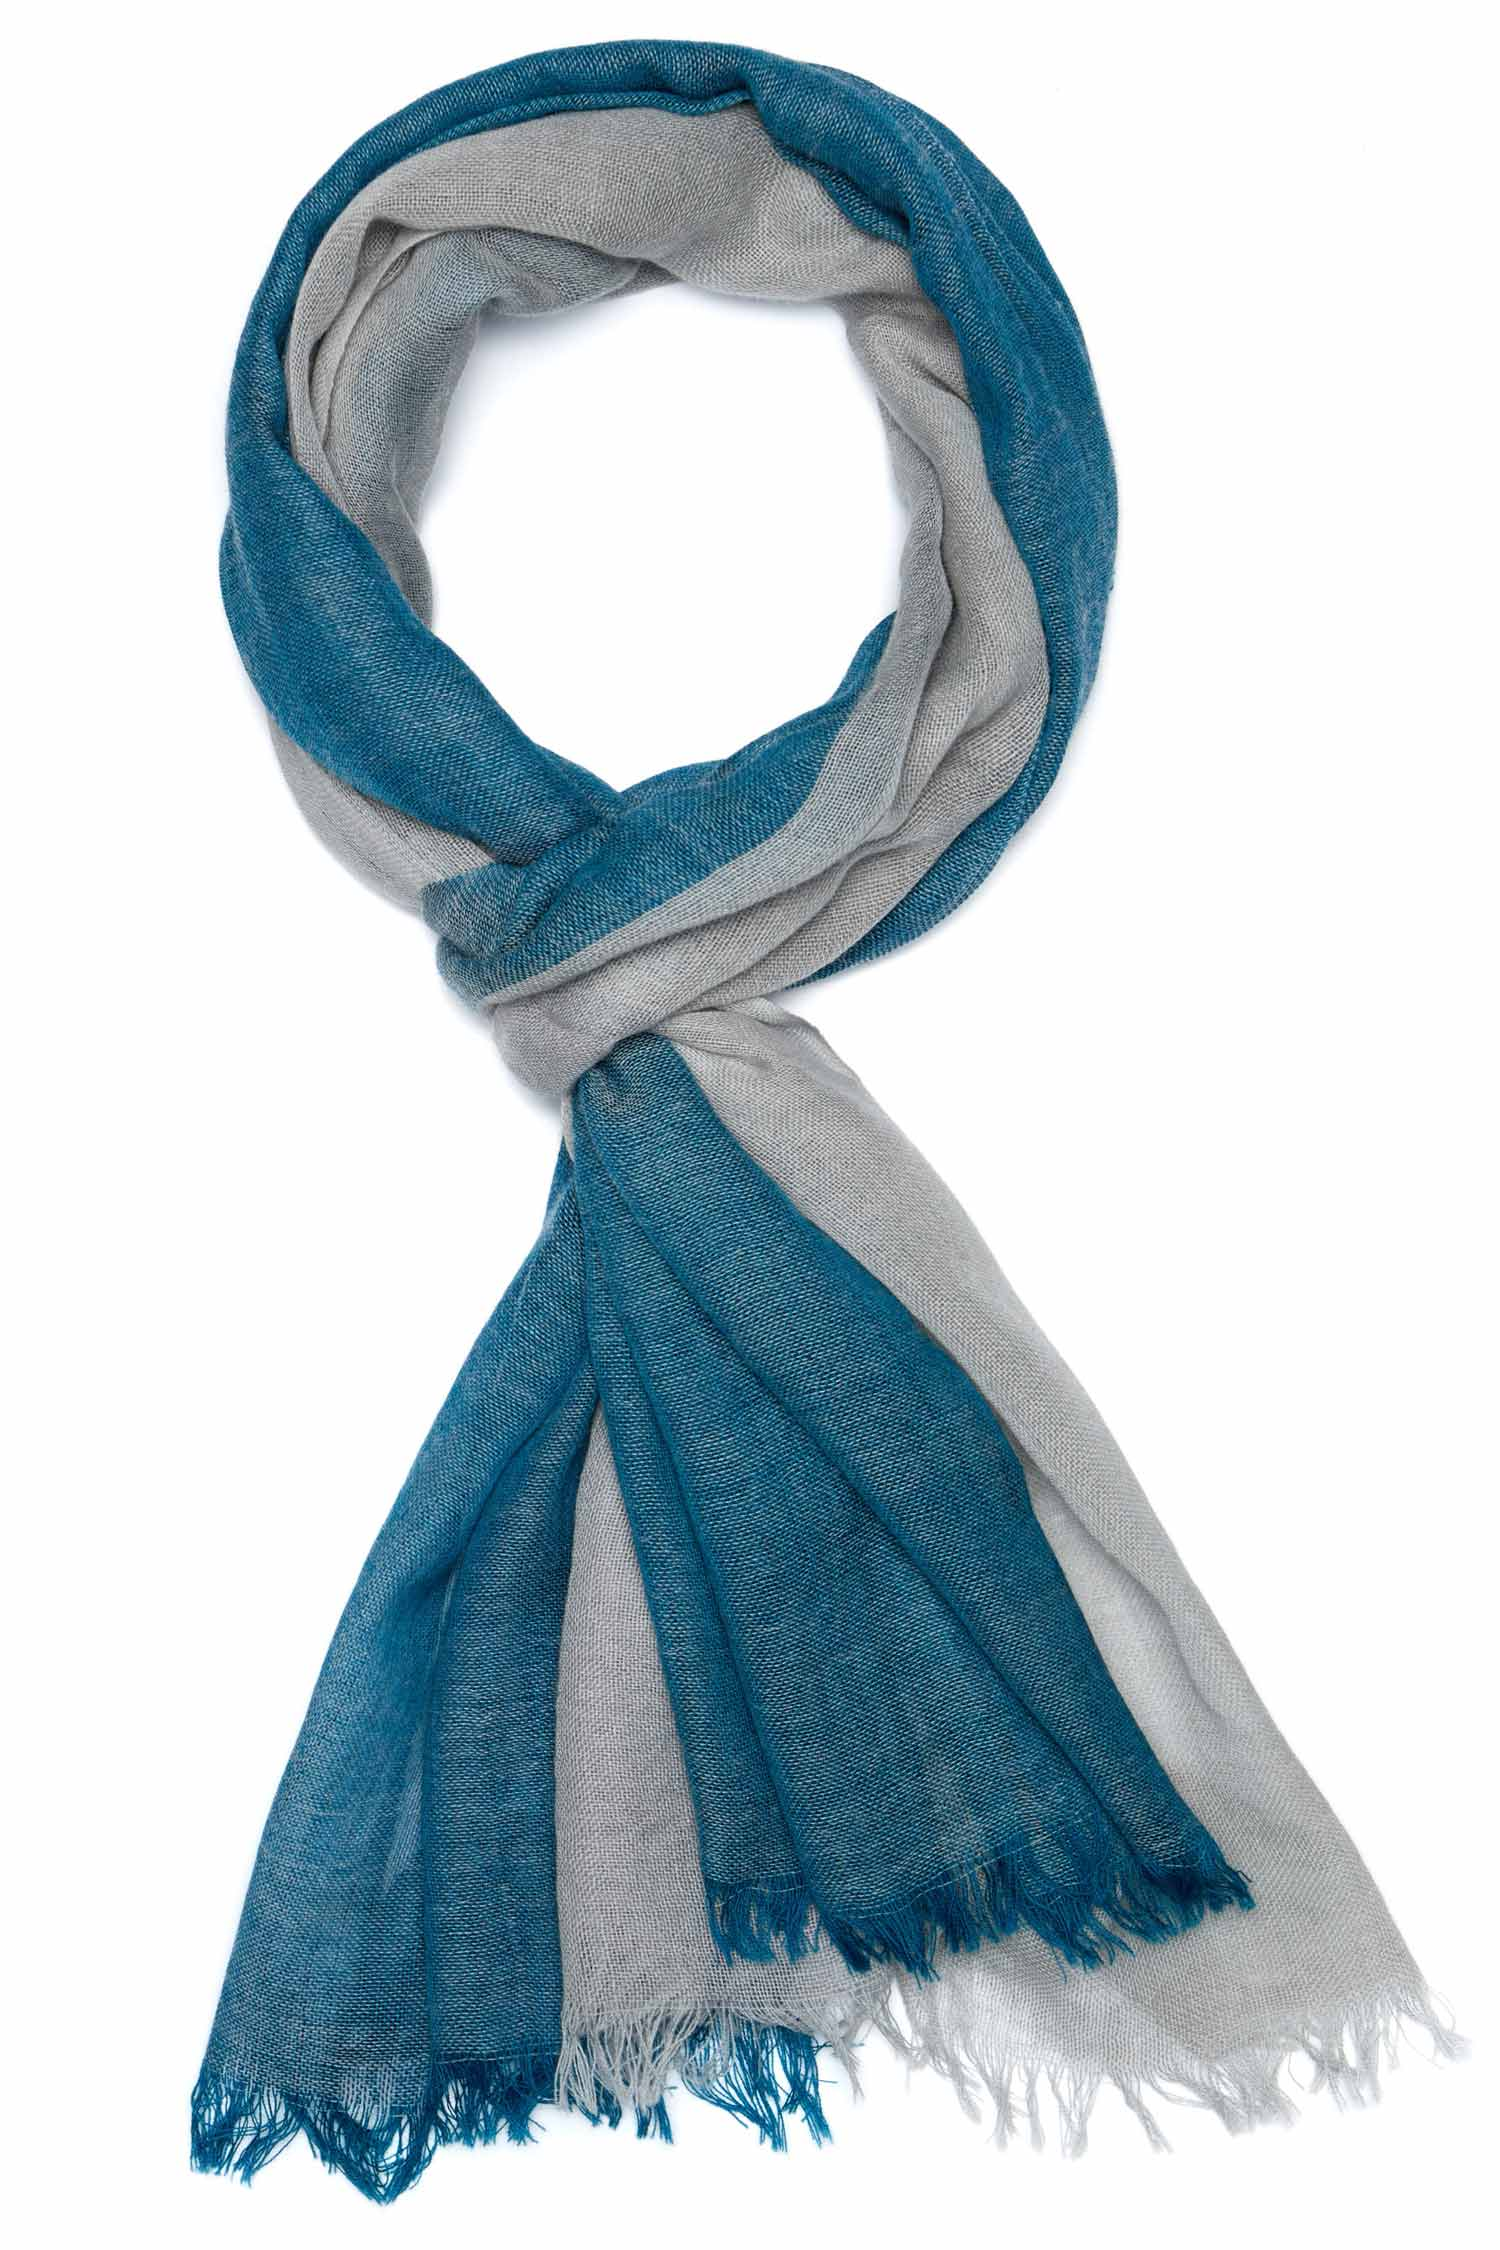 Womens Indigo Handloomed Color Block Scarf in Teal and Gray